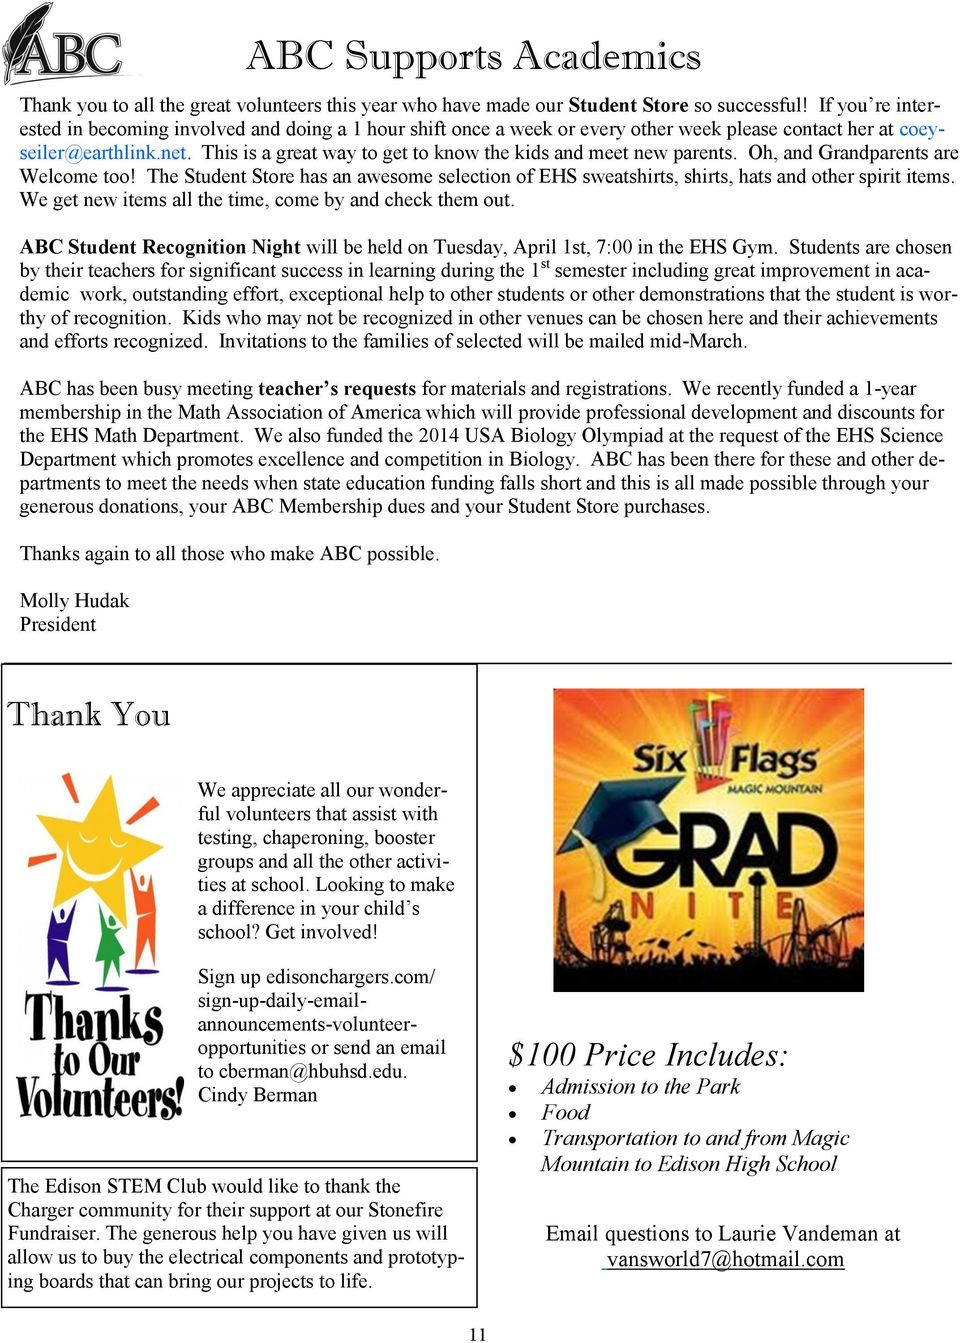 audley webster essay contest